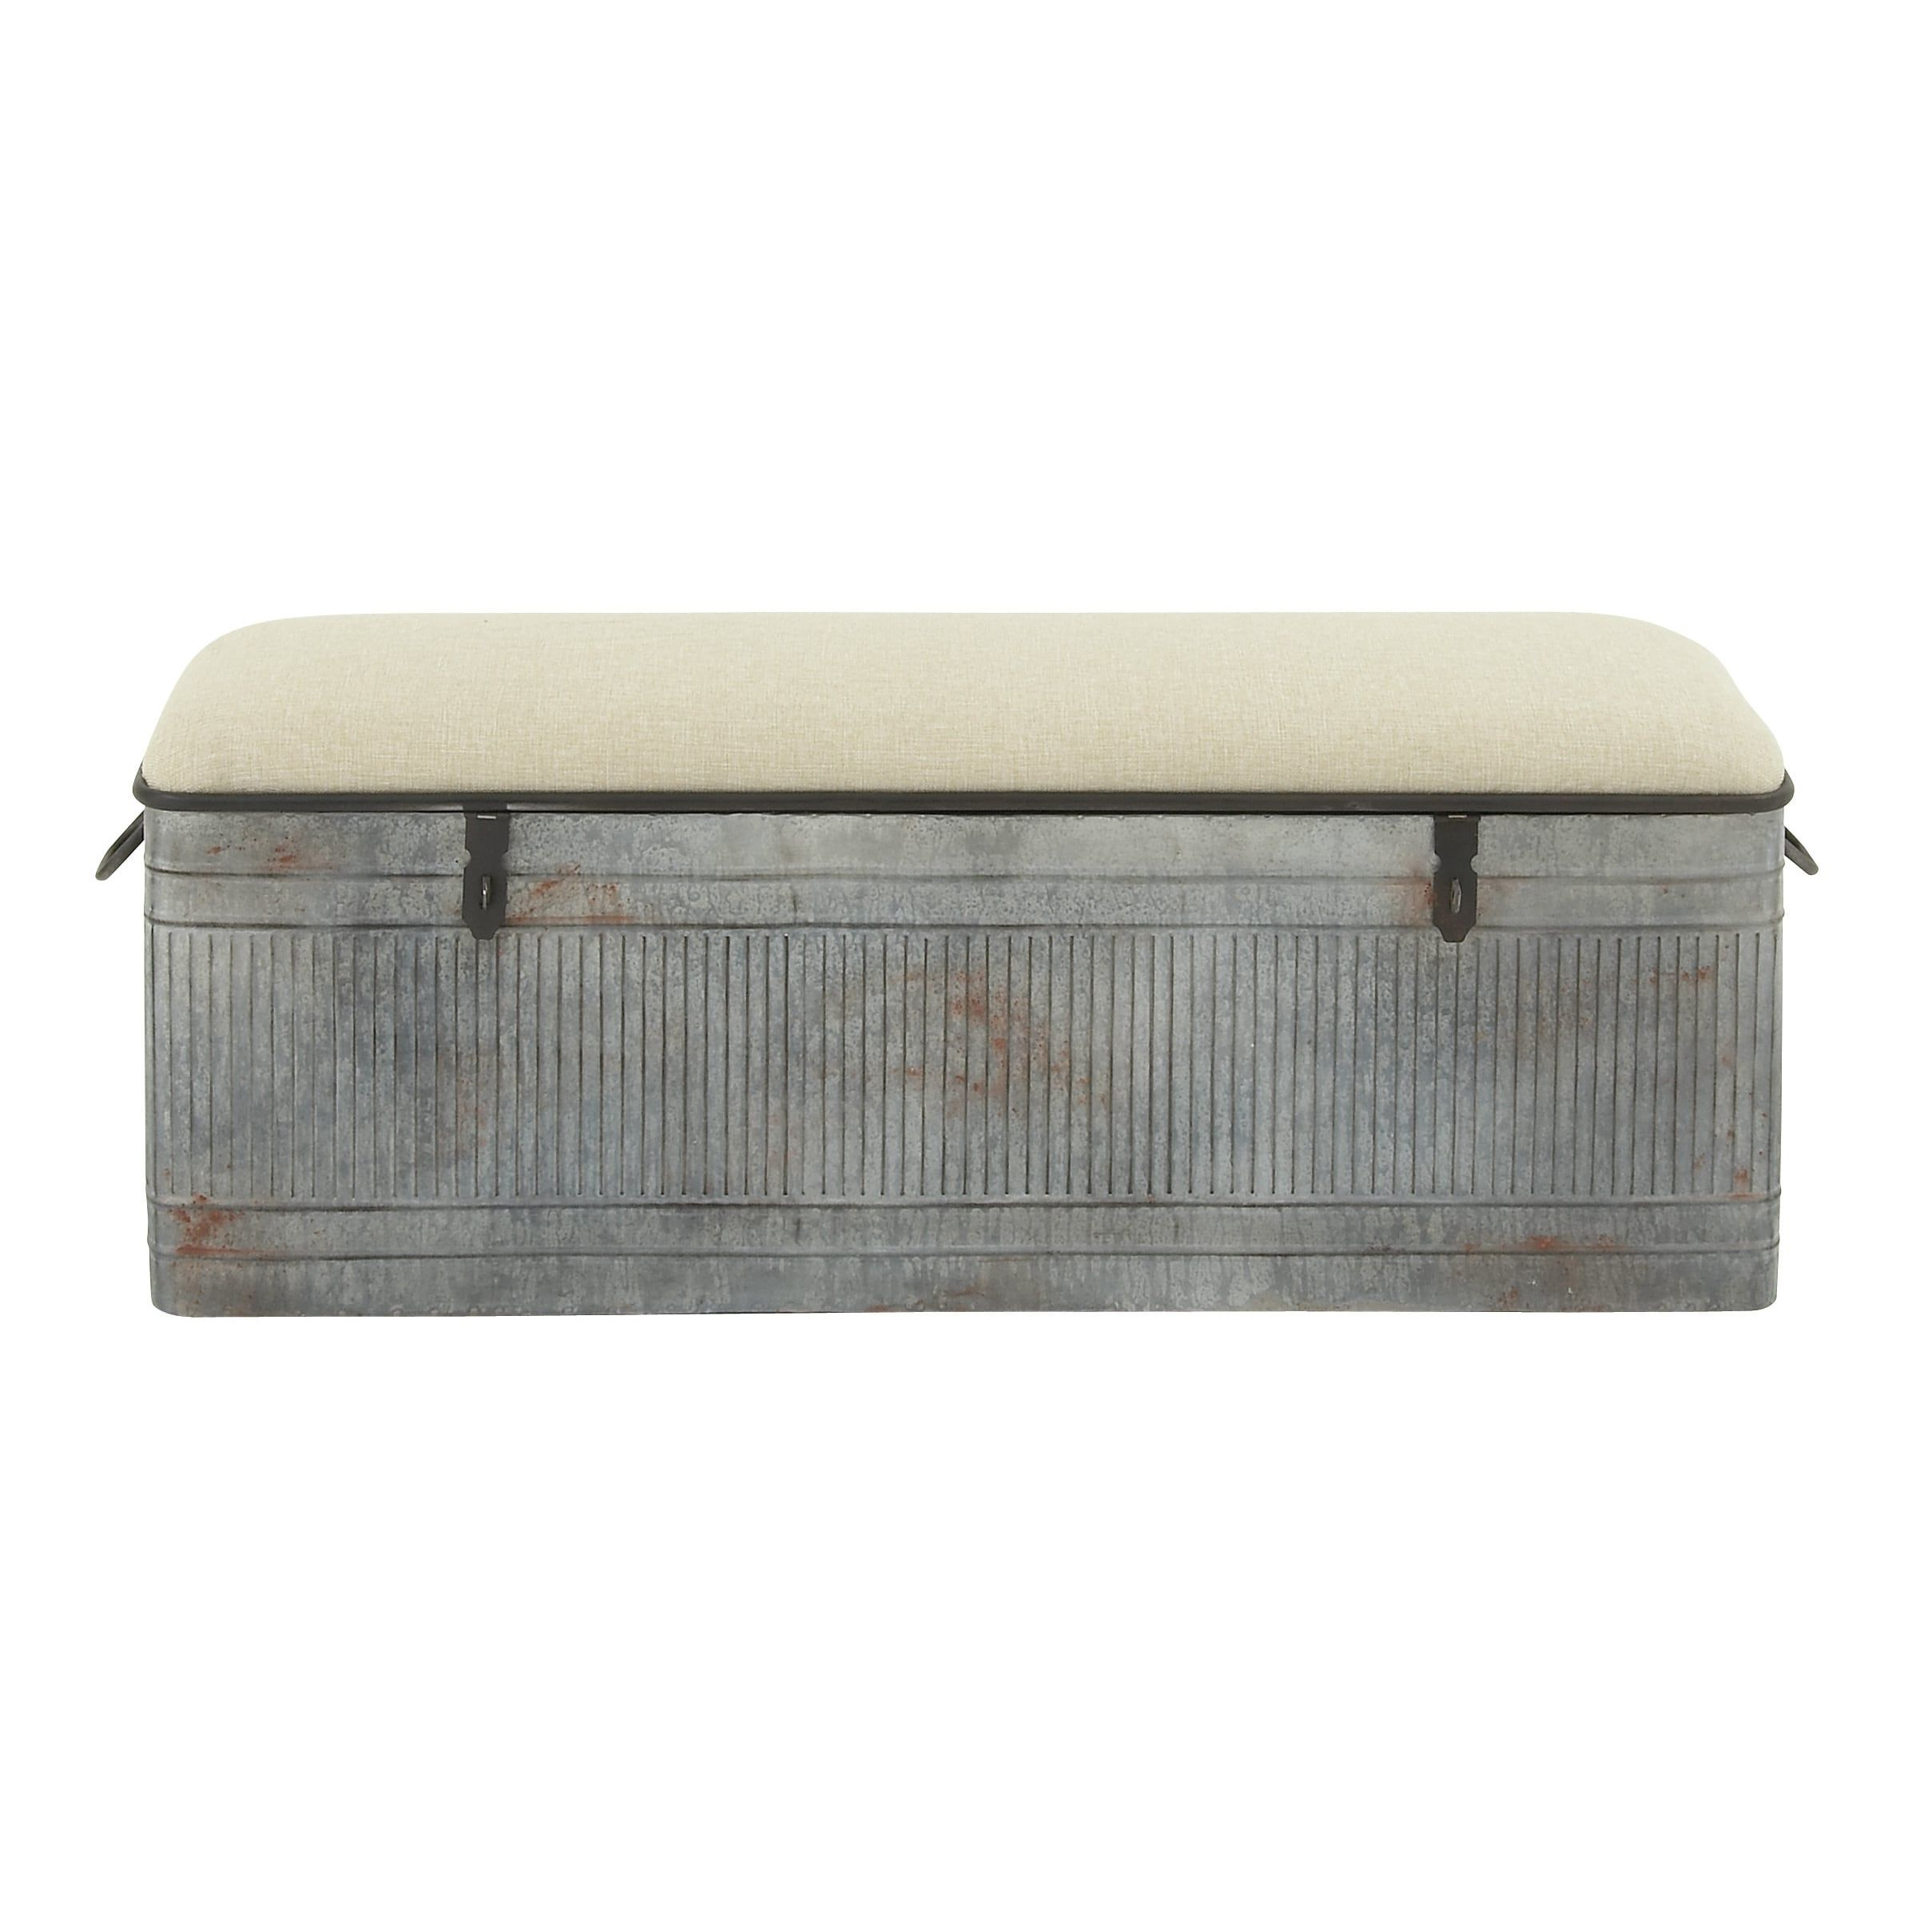 Stupendous Decmode 50 Inch Rustic Gray Metal Storage Bench Gray Theyellowbook Wood Chair Design Ideas Theyellowbookinfo